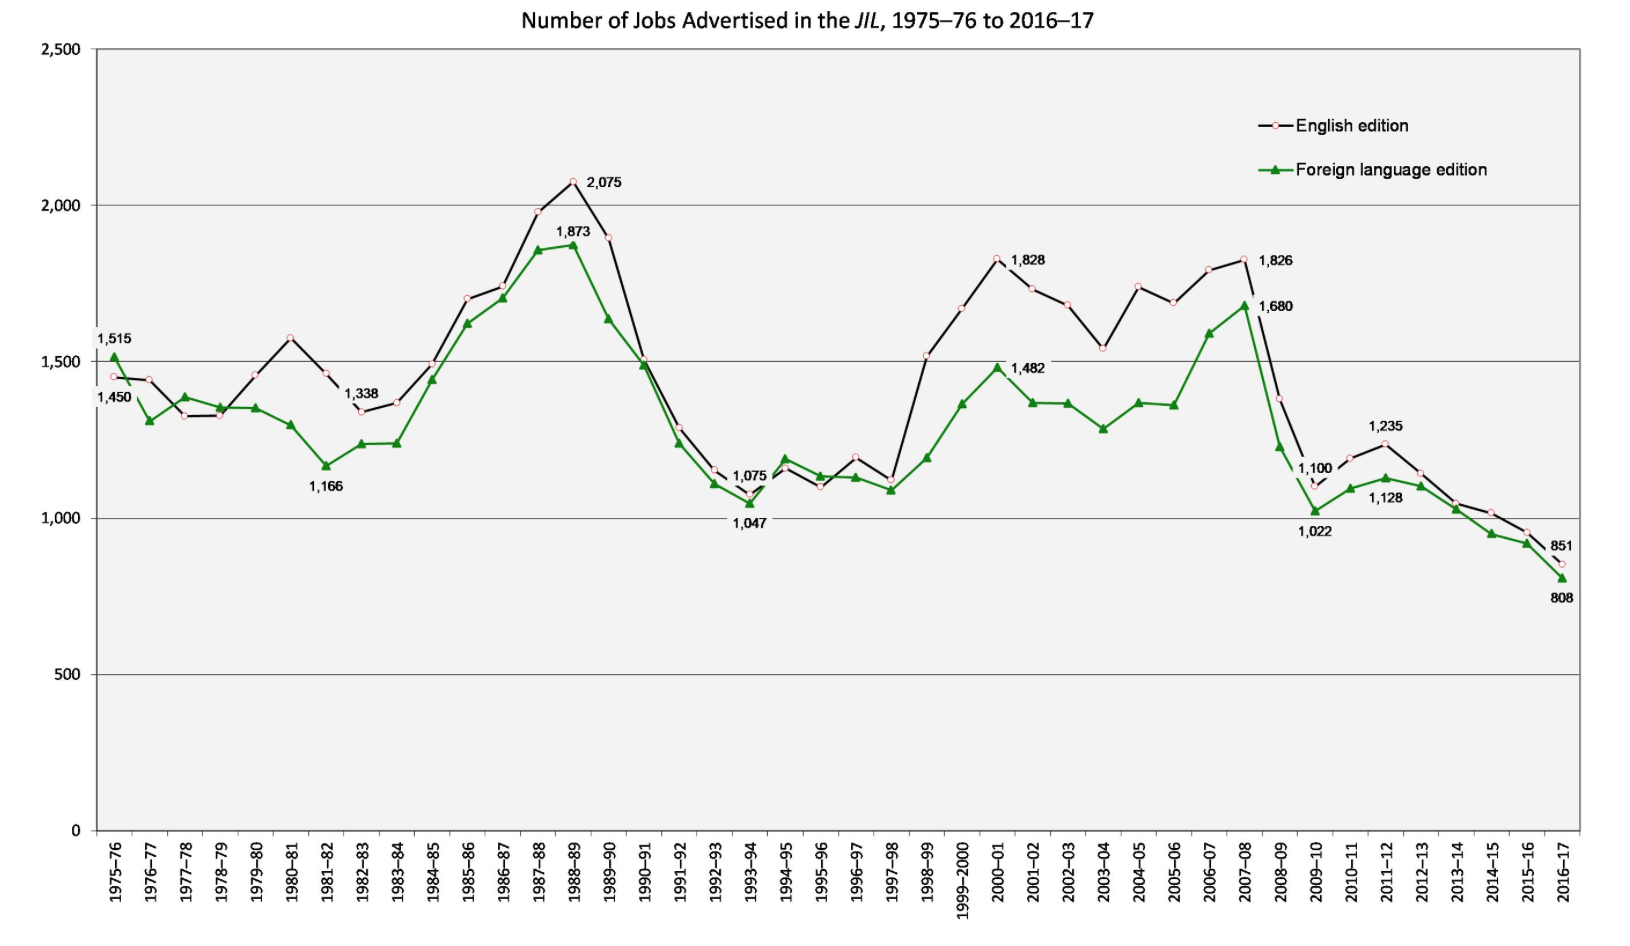 Number of Jobs Advertised in the JIL, 1975-76 to 2016-17. Line graph shows changes in English and foreign language jobs. In 1975-76, there were 1,450 English jobs, 1,338 in 1982-83, 2,075 in 1988-89, 1,075 in 1993-94, 1,828 in 2000-01, 1,826 in 2007-08, 1,100 in 2009-10, 1,235 in 2011-12, and 851 in 2016-17. In 1975-76, there were 1,515 foreign language jobs, 1,166 in 1981-82, 1,873 in 1988-89, 1,047 in 1993-94, 1,482 in 2000-01, 1,680 in 2007-08, 1,022 in 2009-10, 1,128 in 2011-12, and 808 in 2016-17.